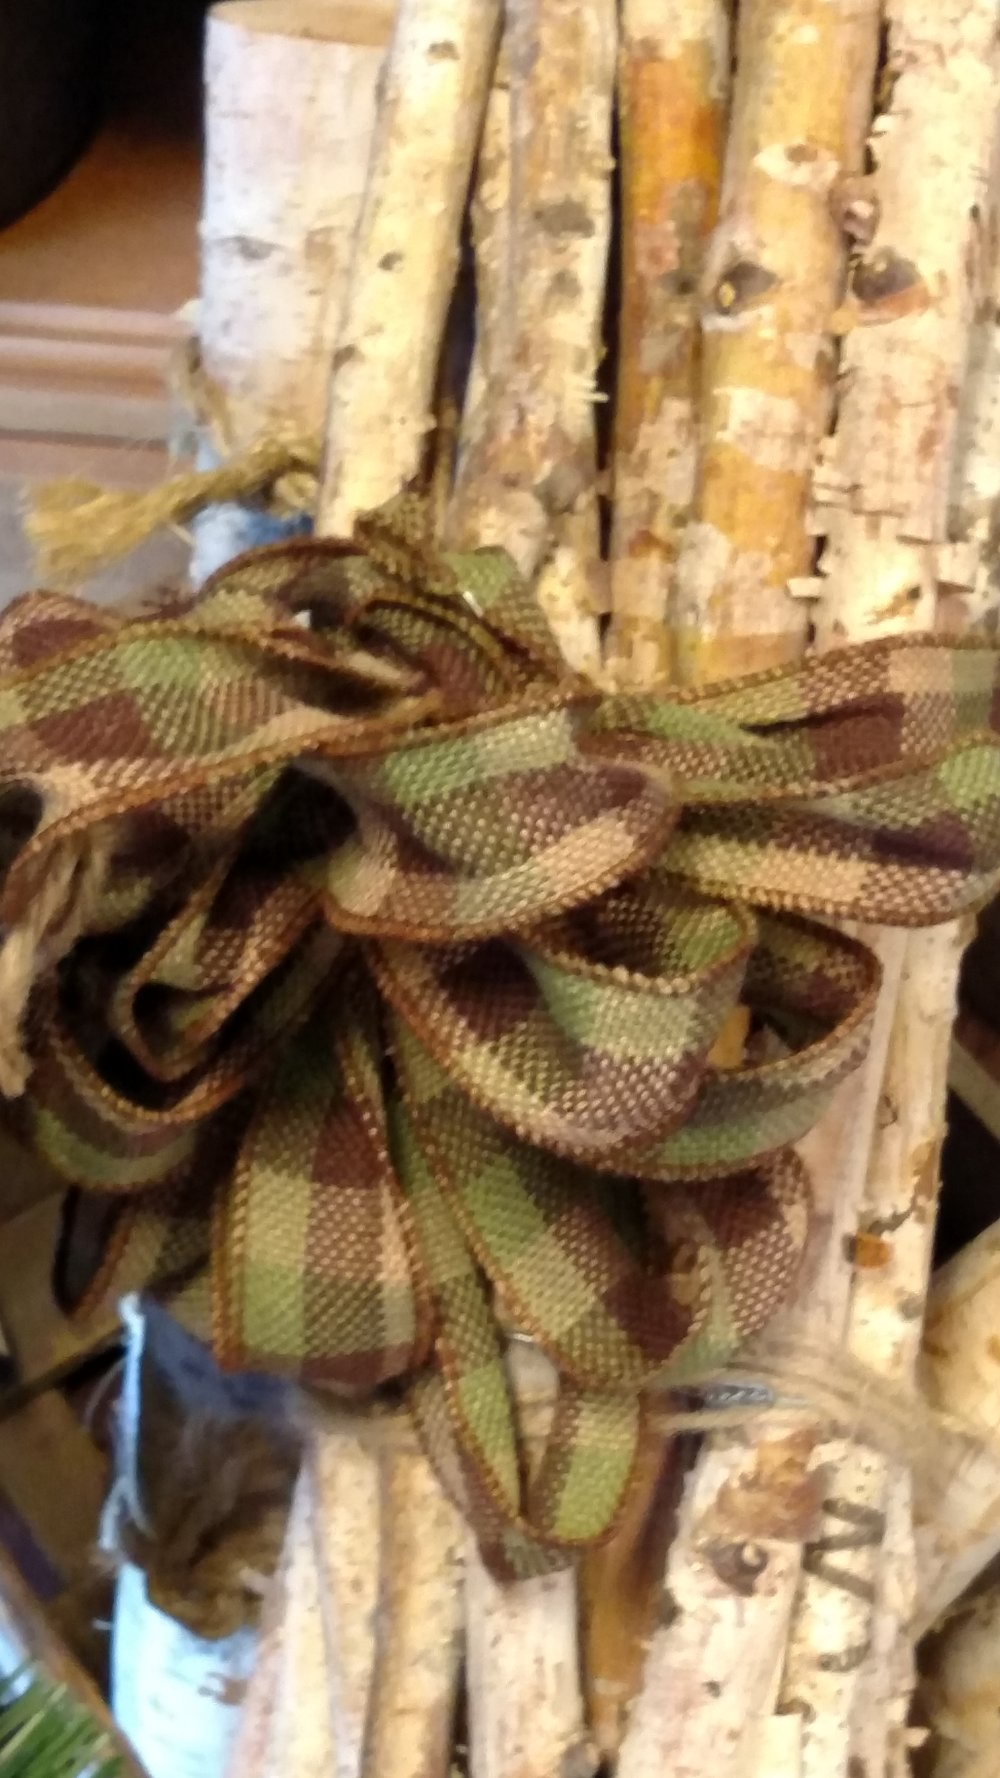 Bundle of Fire Wood Tied neatly with a Tartan Plaid Bow